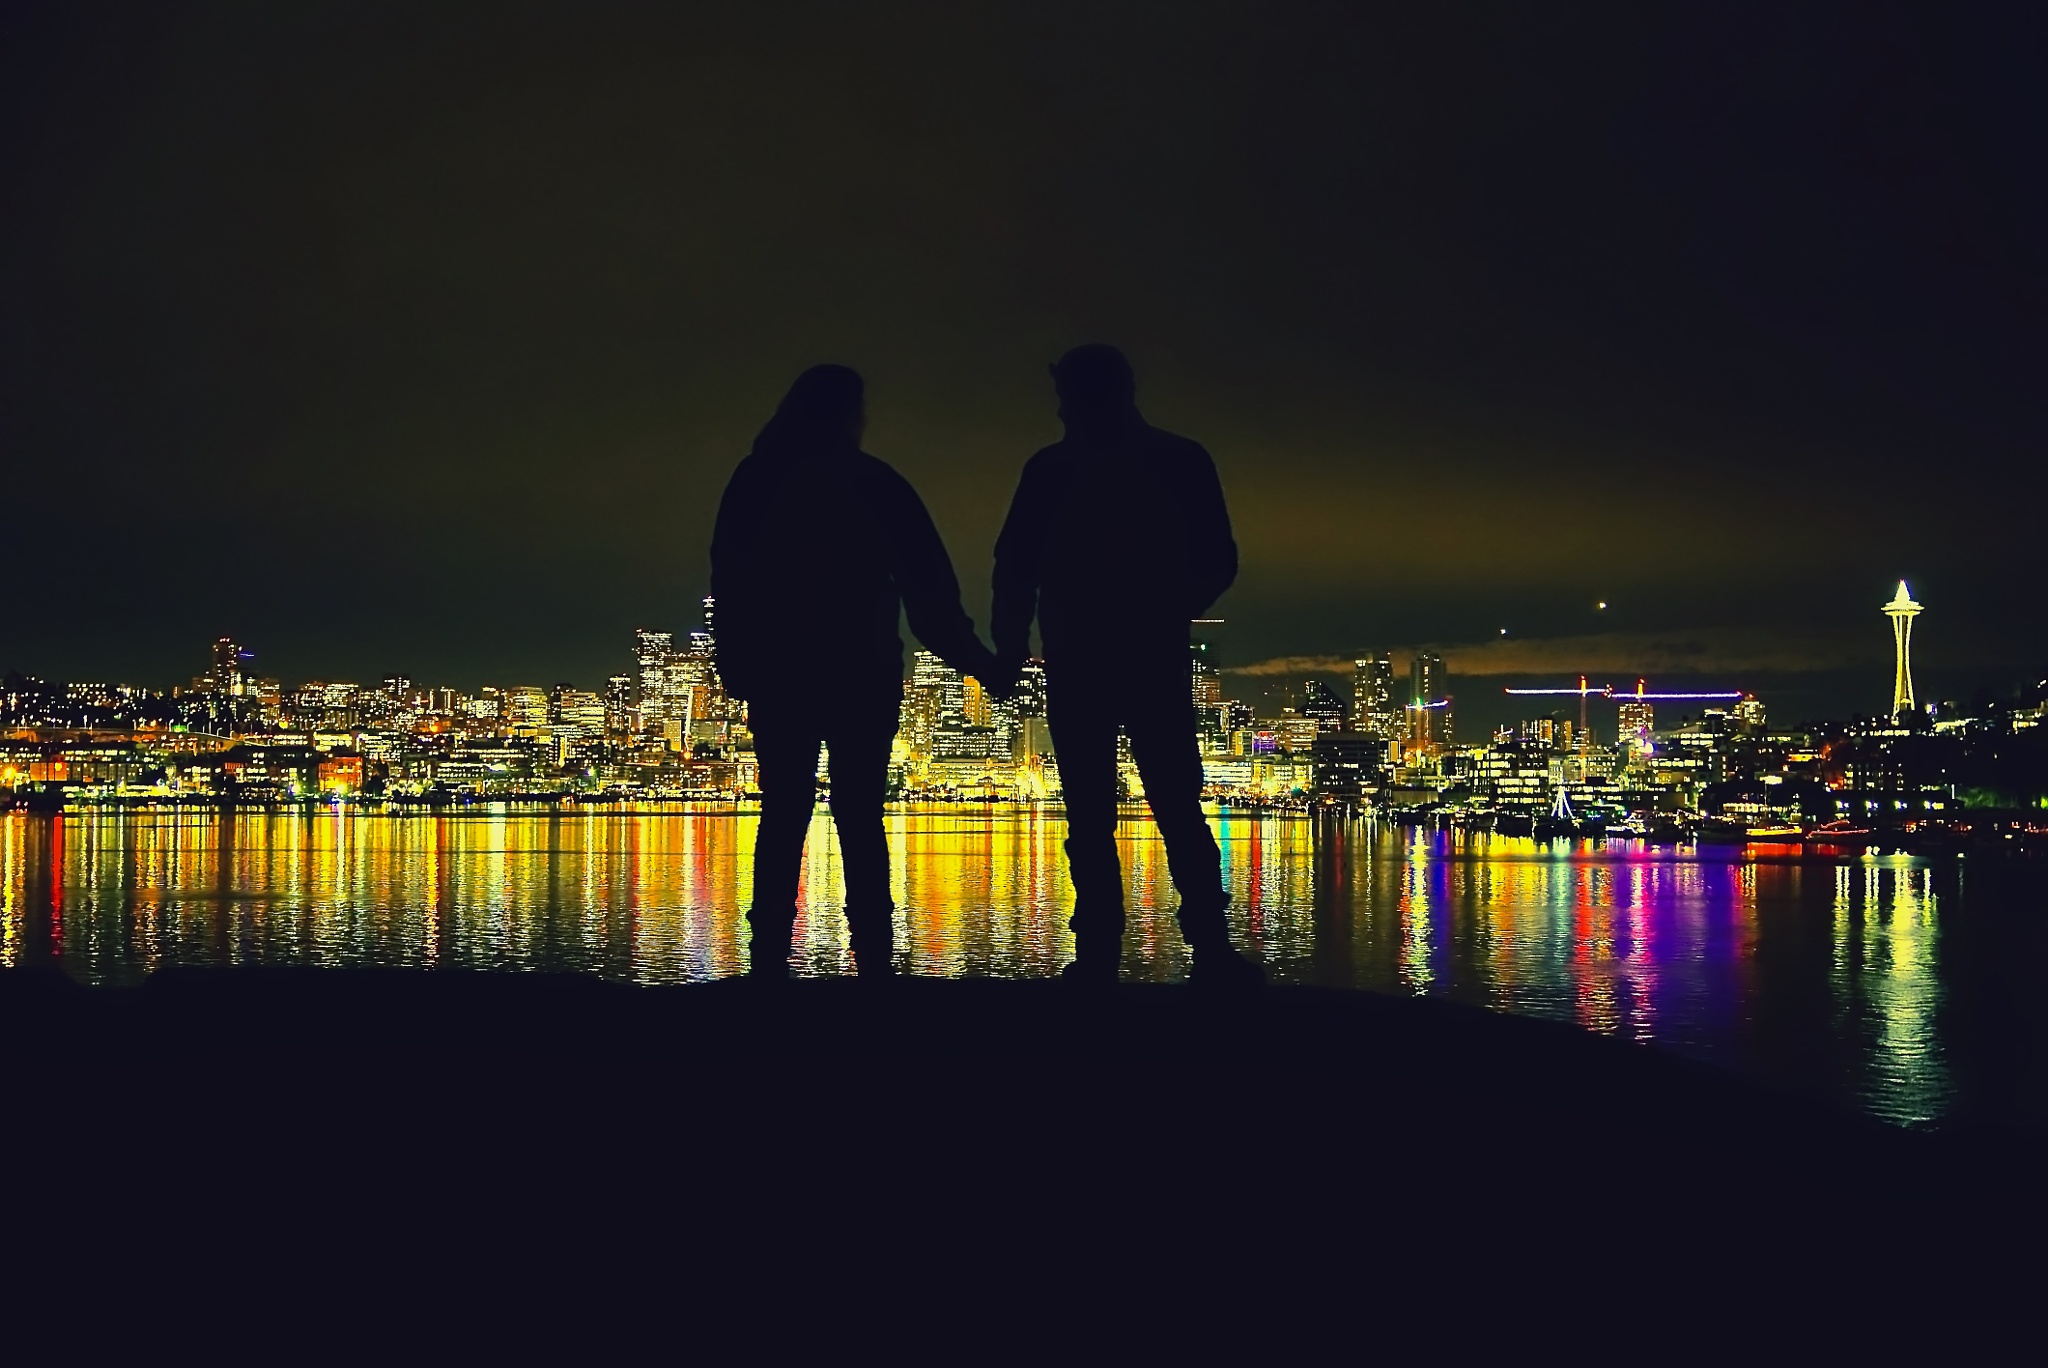 SLEEPLESS IN SEATTLE by orhidea images